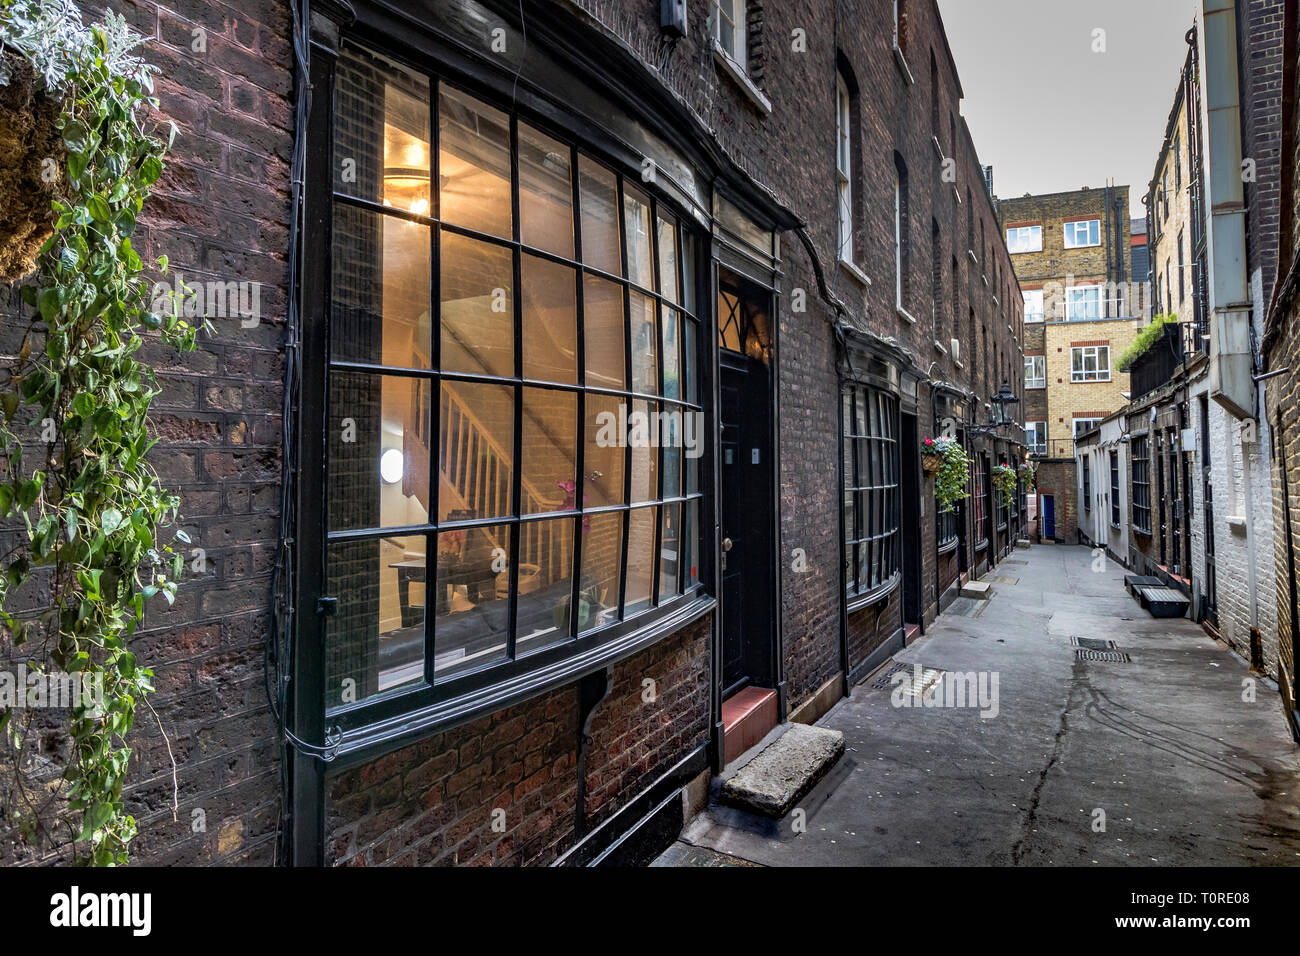 Bow-fronted houses in Goodwin's Court , Goodwin's Court is a narrow alley running between St. Martin's Lane and Bedfordbury  in London's West End - Stock Image